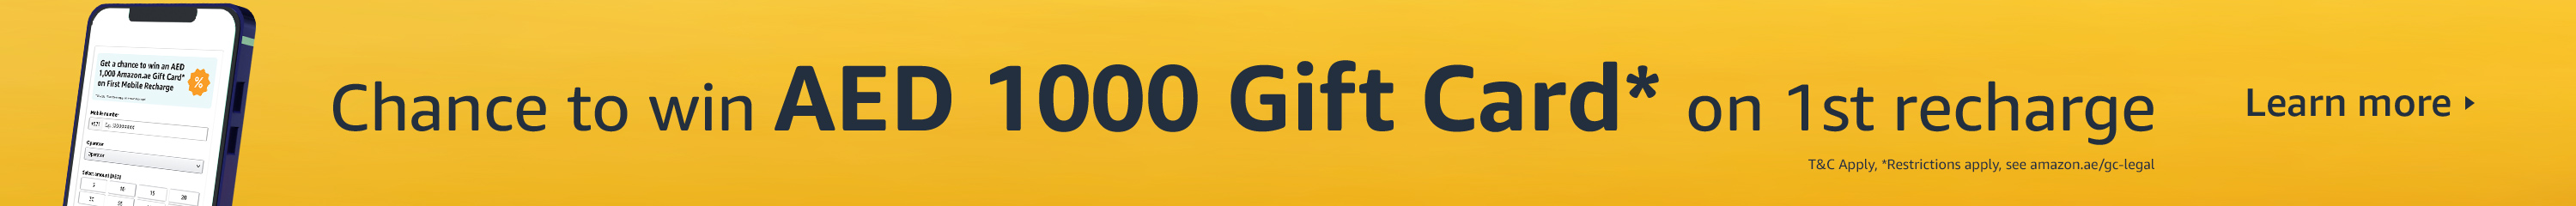 Win AED 1000 gift card